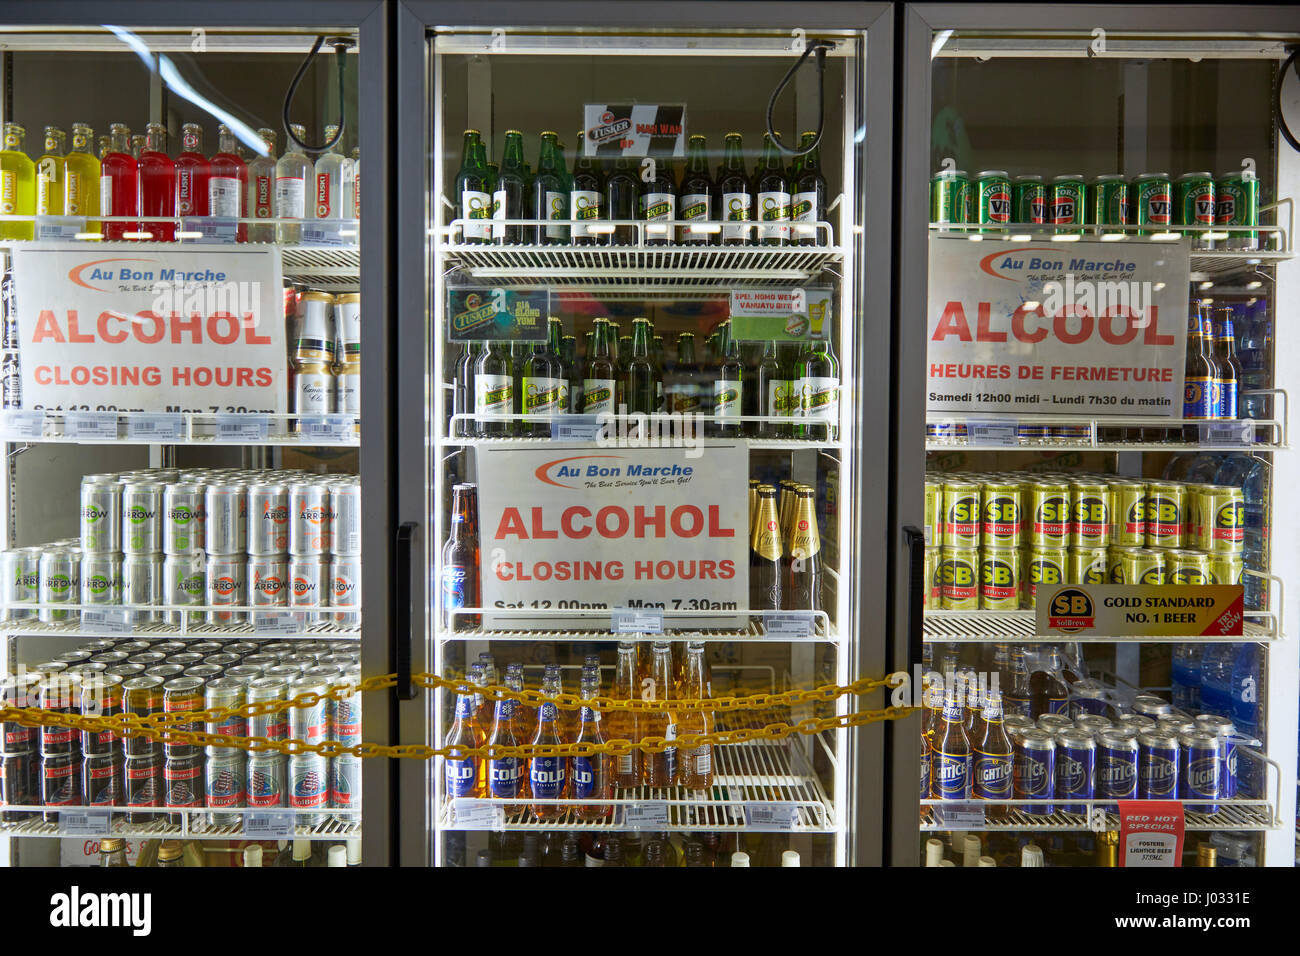 Alcohol Closing Hours sign in Au Bon Marche, Port Vila, Efate Island, Vanuatu - Stock Image